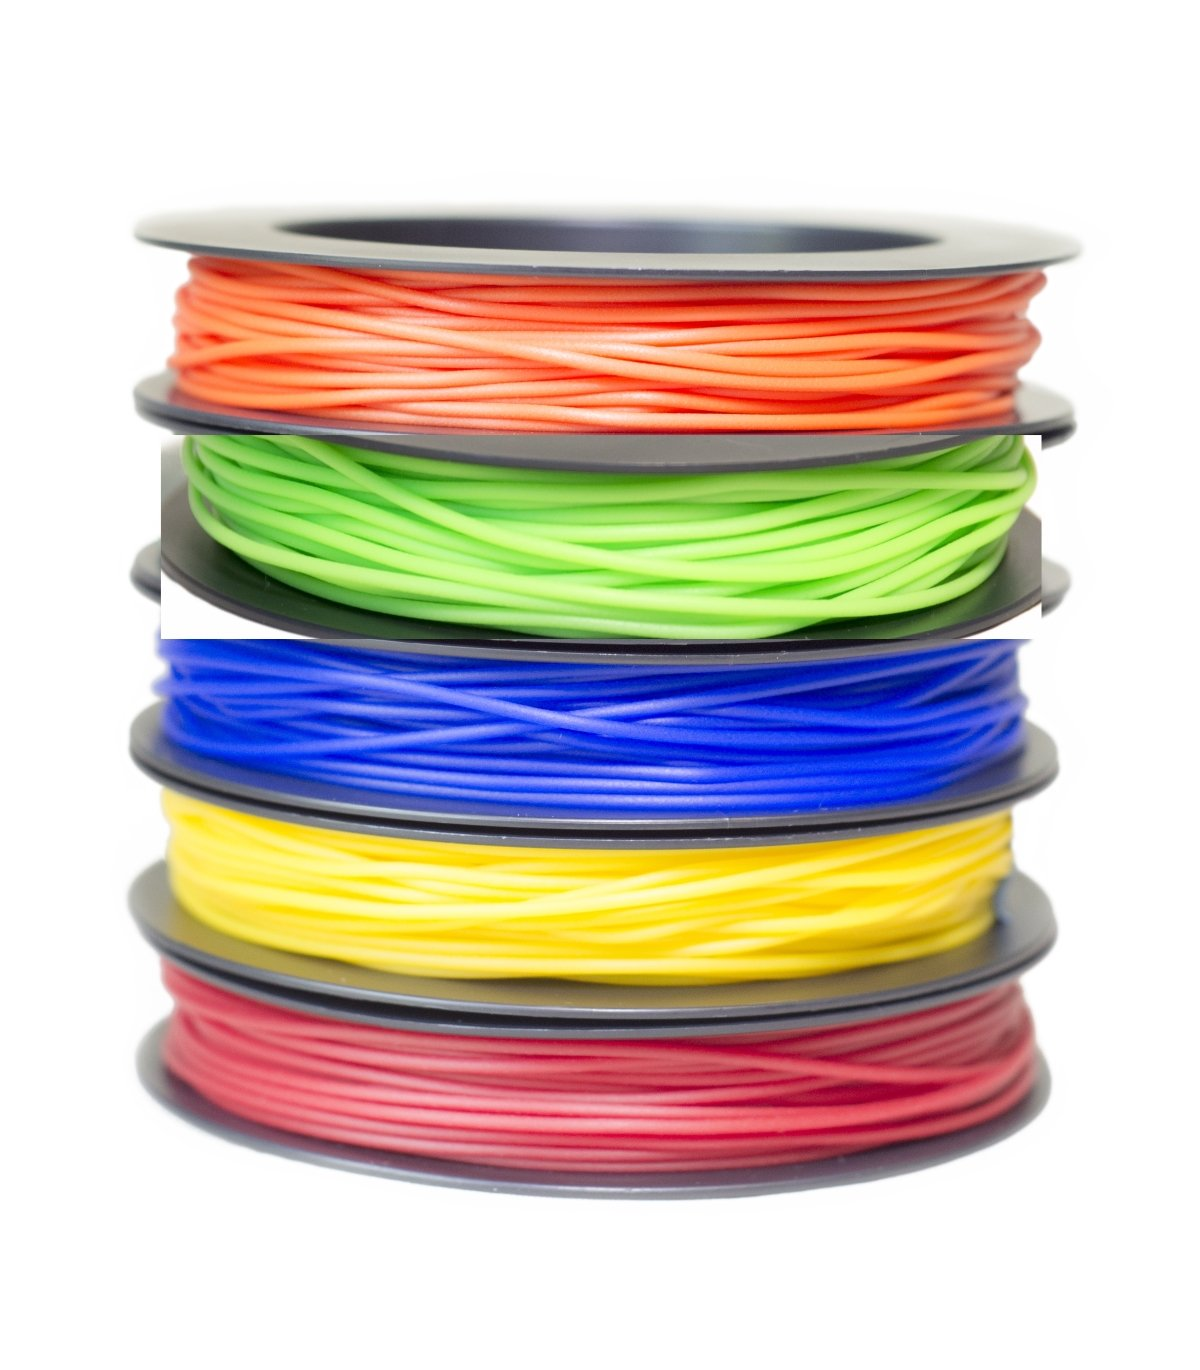 Amazon.com: TPU, flexible NinjaFlex Filament 1,75 mm 50 g ...